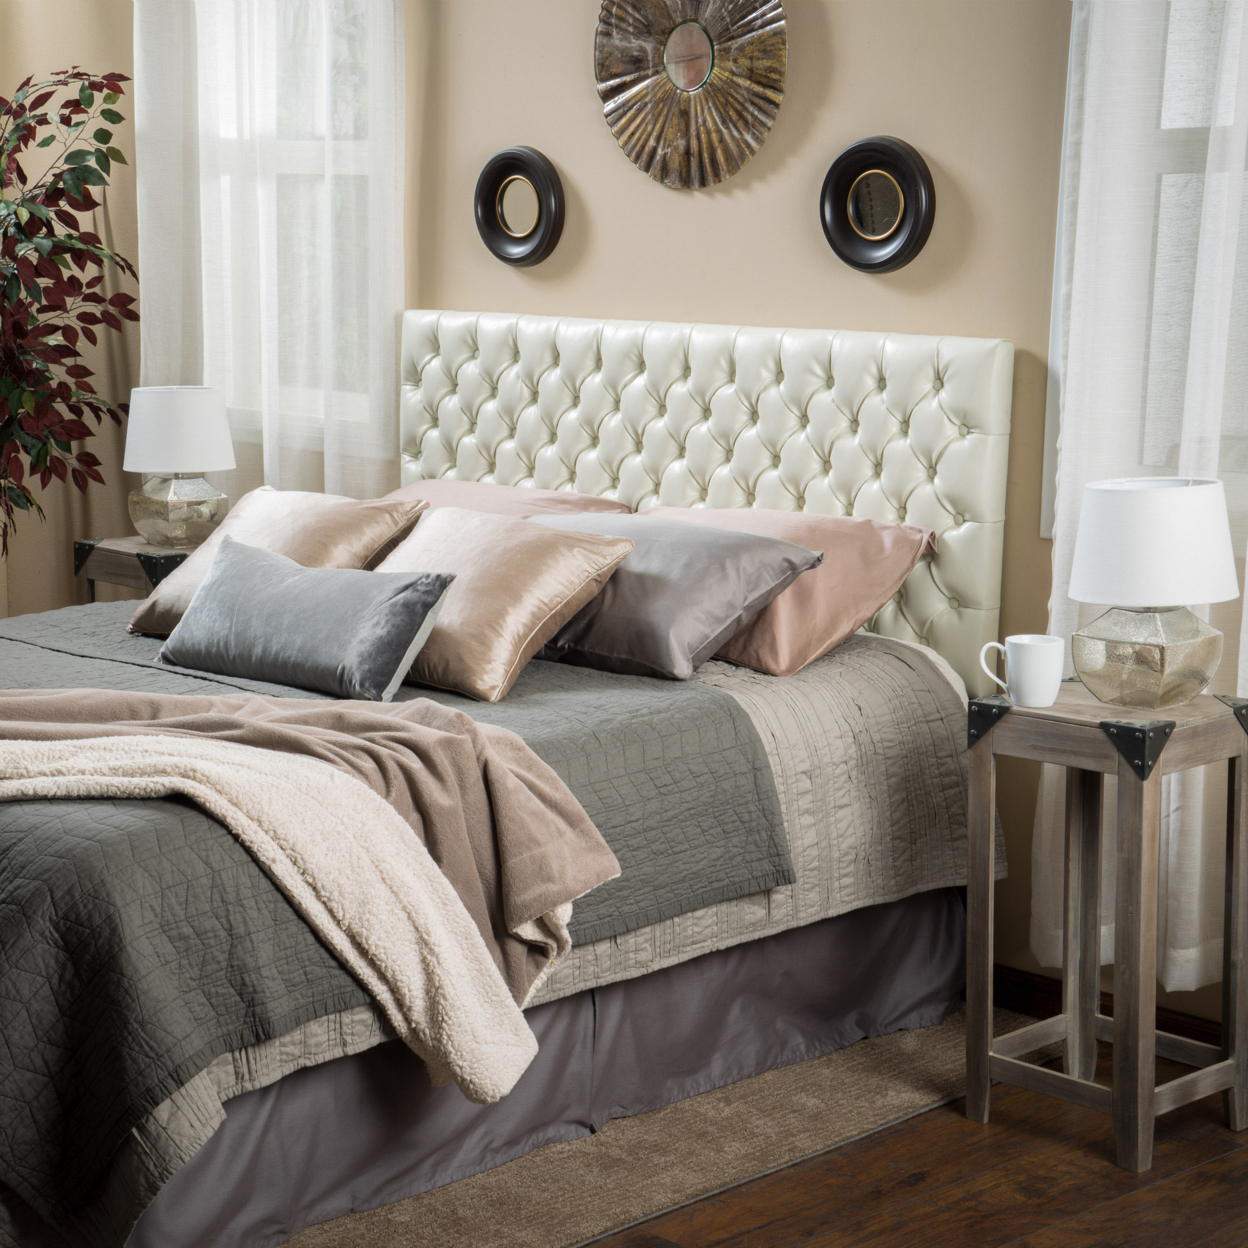 Denise Austin Home Wyoming Queen/Full Button Tufted Fabric Headboard - Ivory denise agosdane